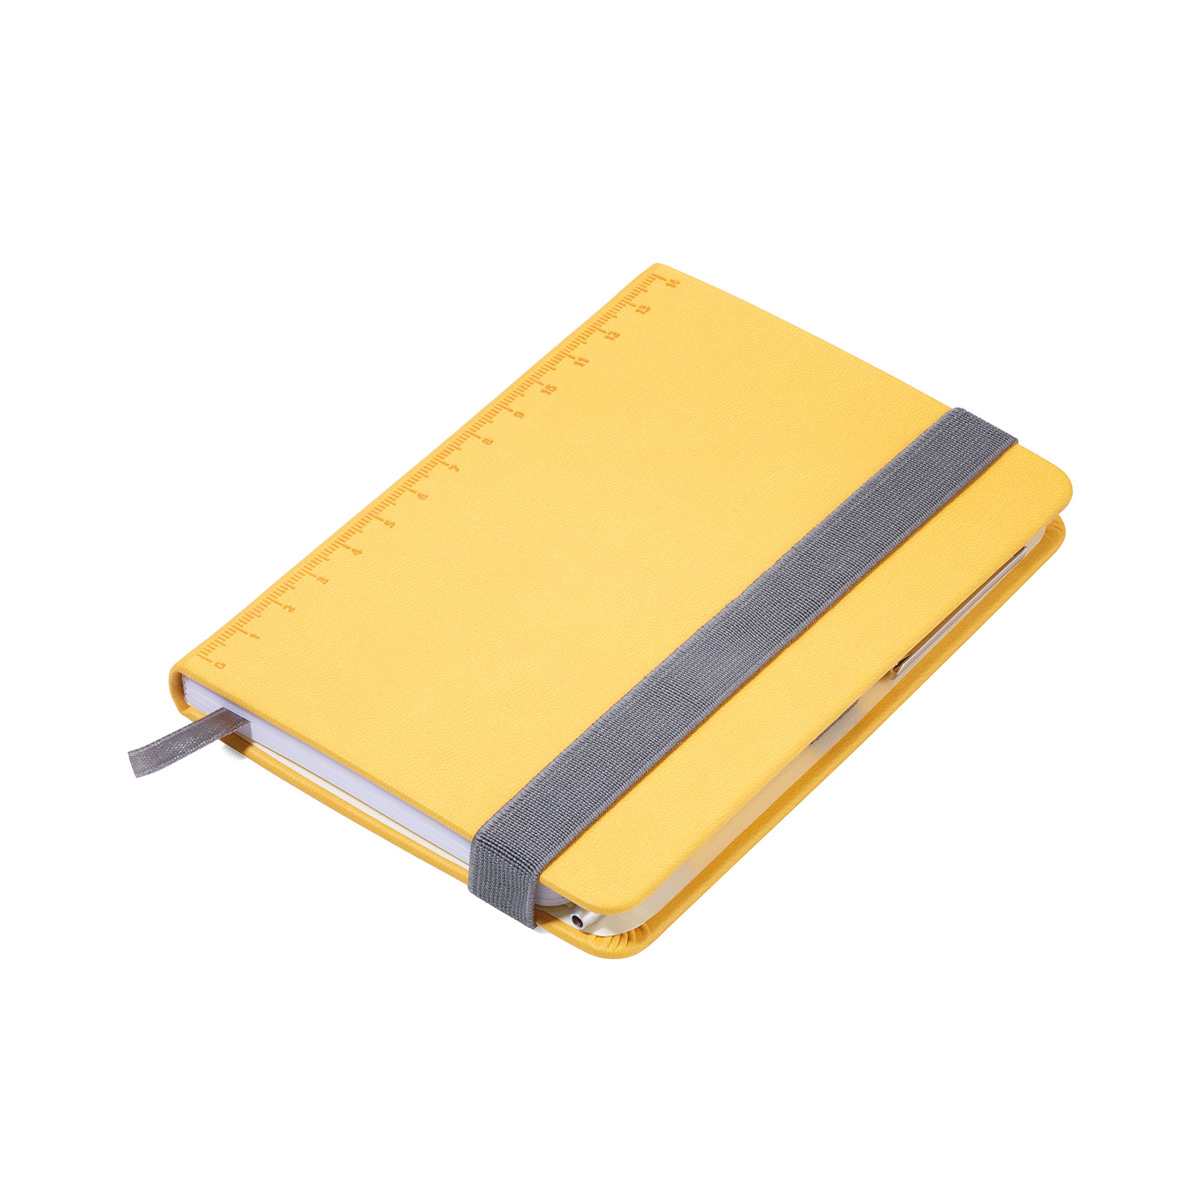 Troika A6 Notebook with Slim Construction Pen Yellow